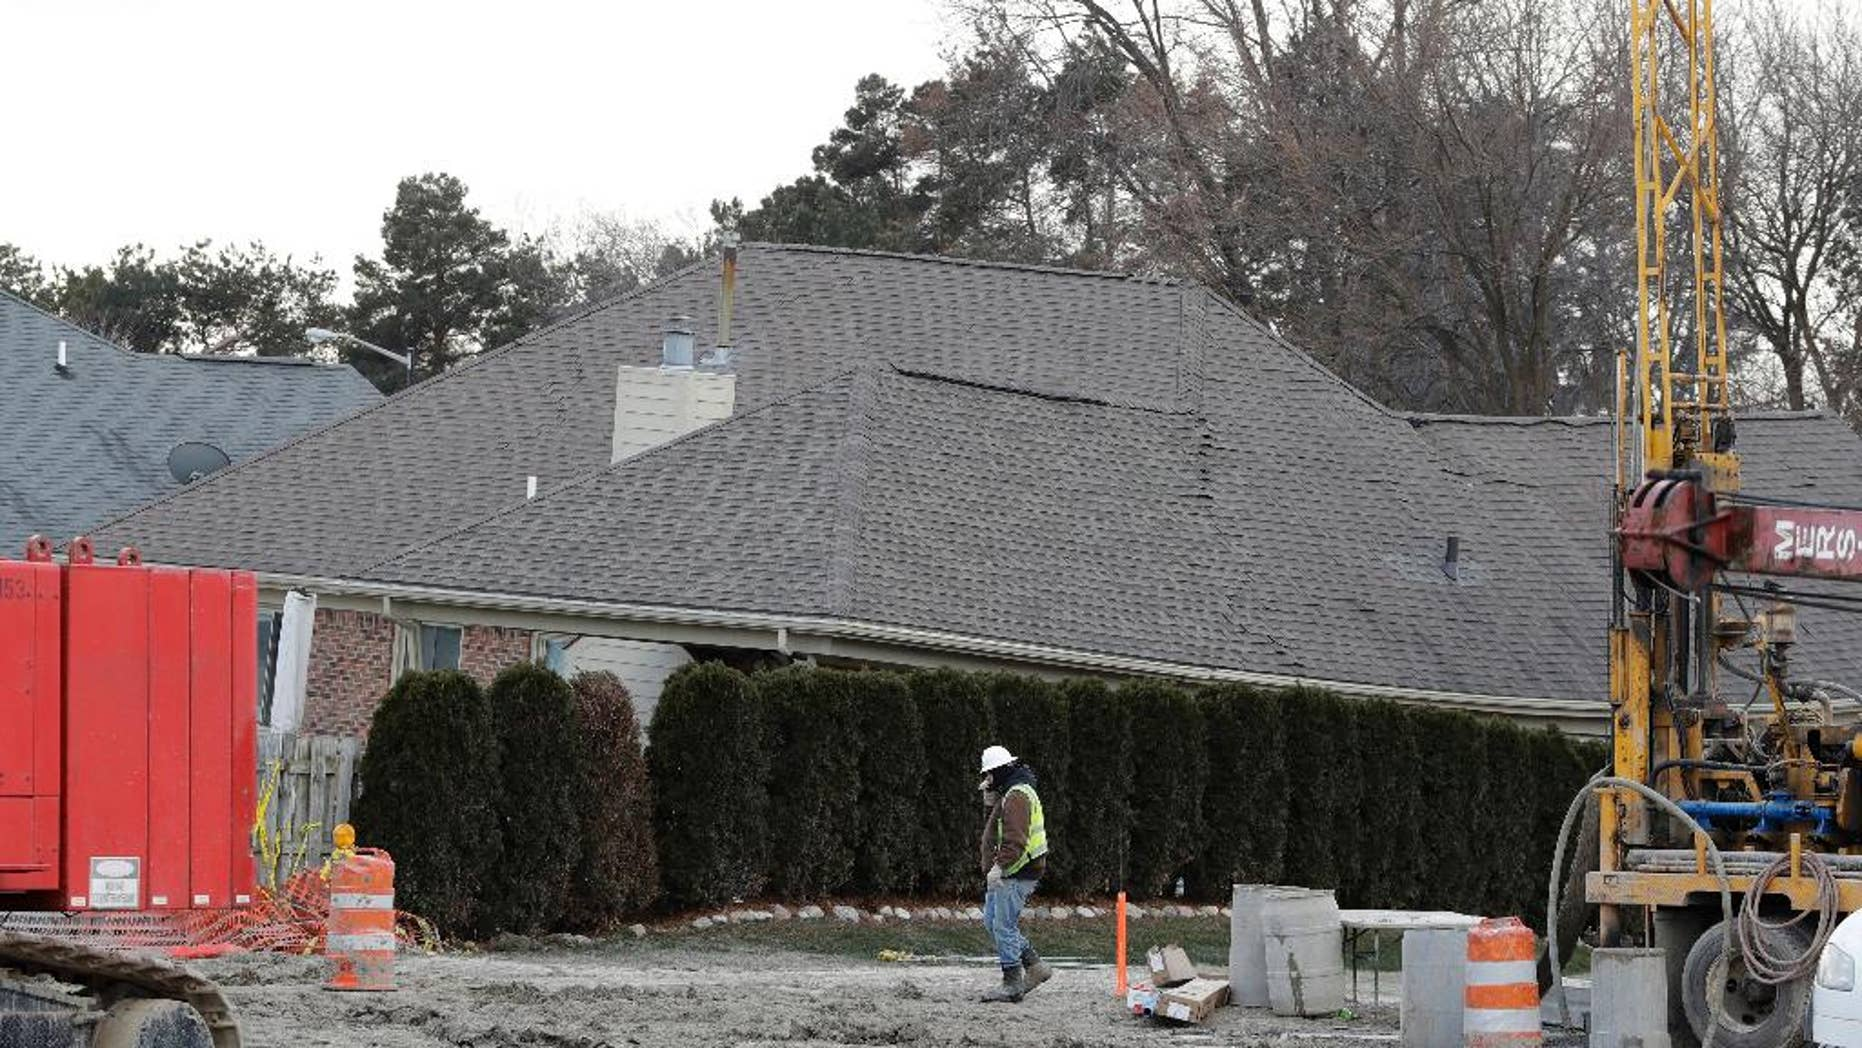 FILE - In this Wednesday, Jan. 4, 2017, file photo, a construction worker walks by a home collapsed by a sinkhole, in Fraser, Mich. Deep down inside the sinkhole's crumbled concrete and dirt is a busted sewage line that's expected to costs tens of millions of dollars and months to repair. (AP Photo/Carlos Osorio, File)